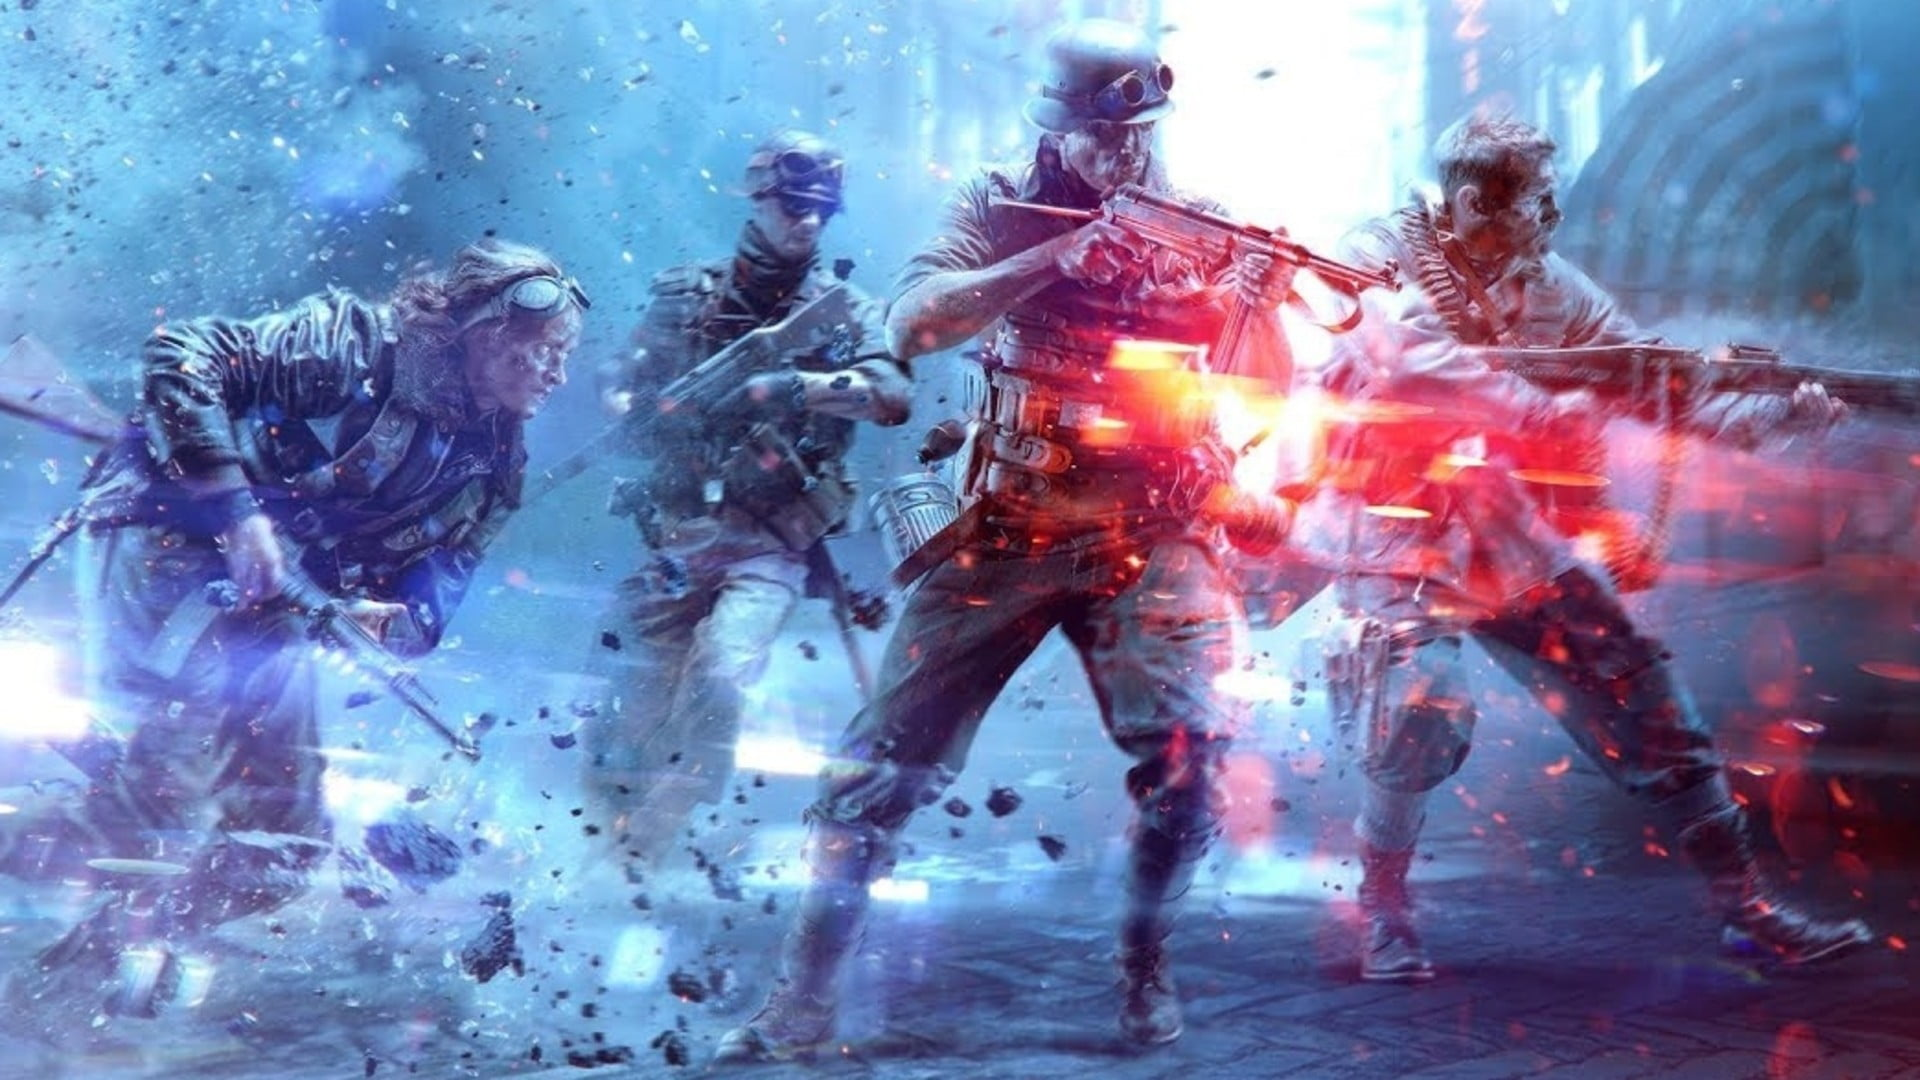 Battlefield 5': The Best Weapons For Surviving in Multiplayer